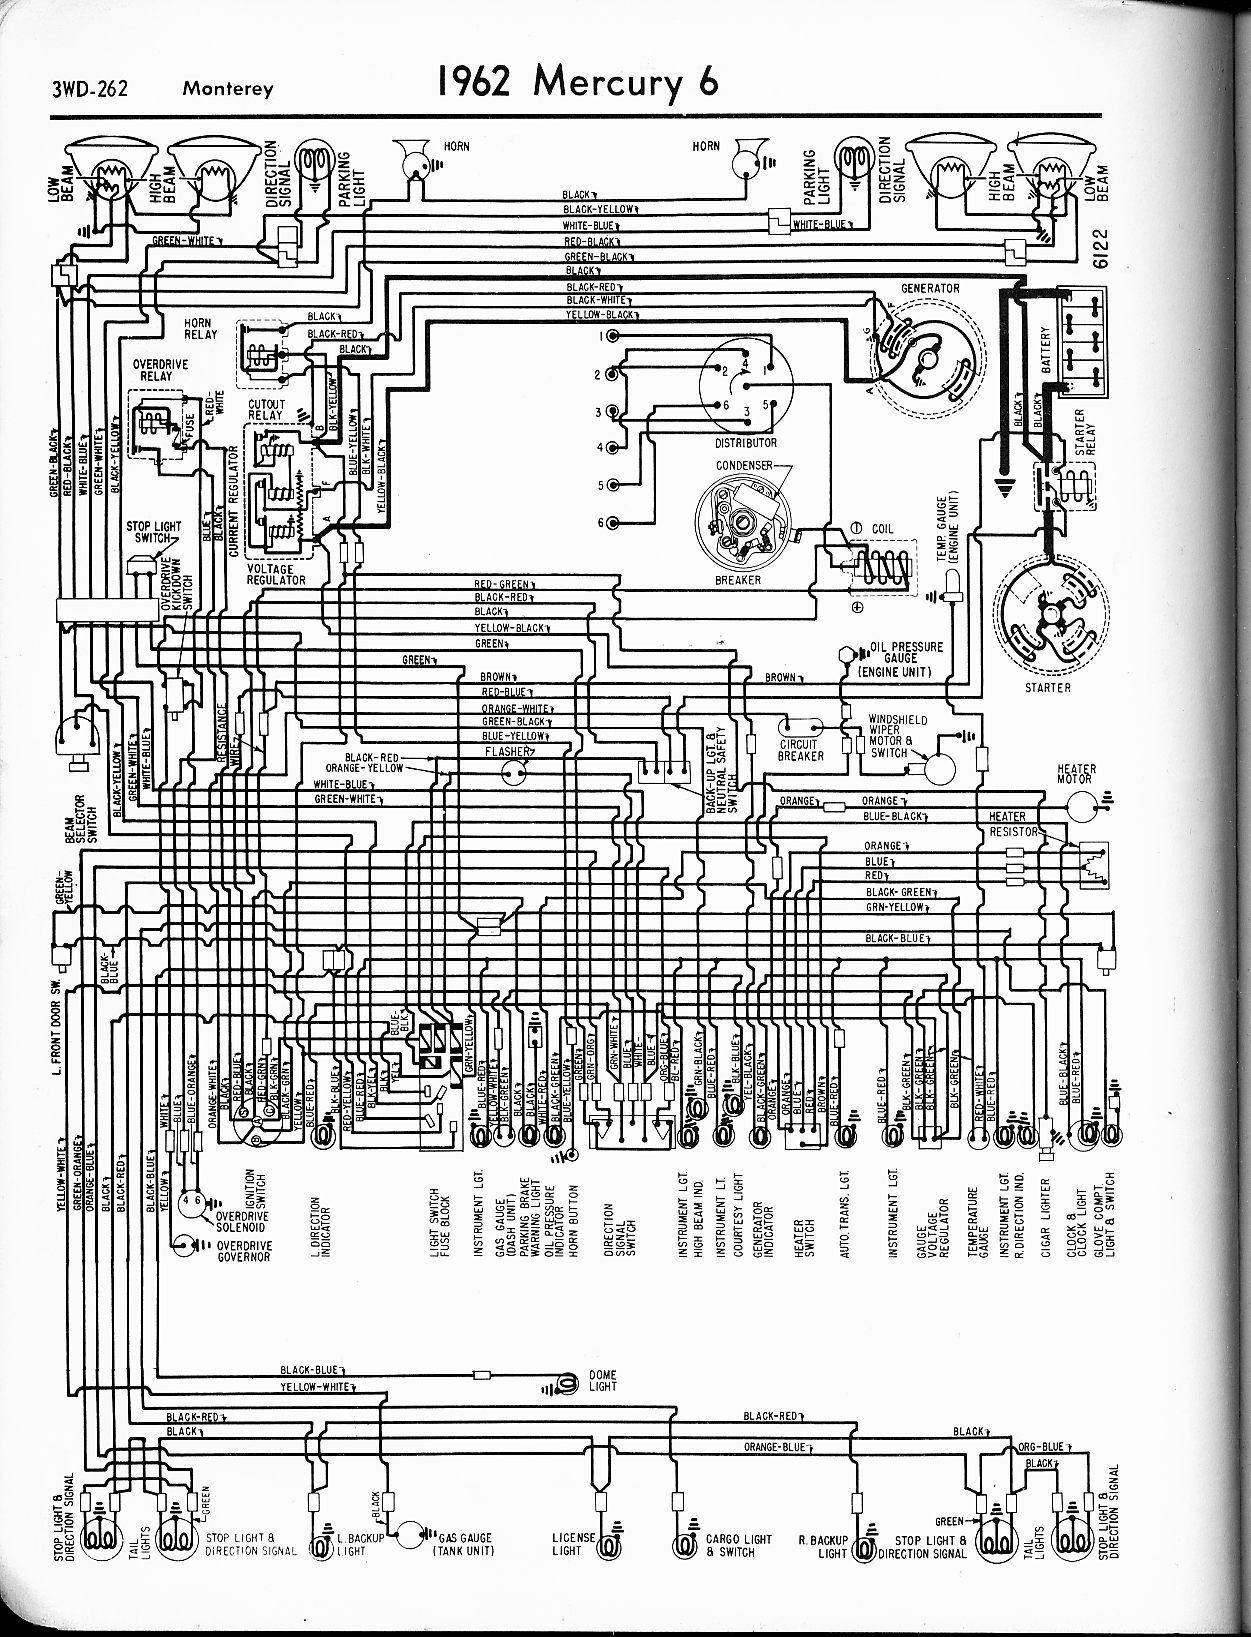 72 ford f100 dash wiring diagram outside light pir 1962 chevy truck schematic 1972 c10 emc yogaundstille de u2022 1969